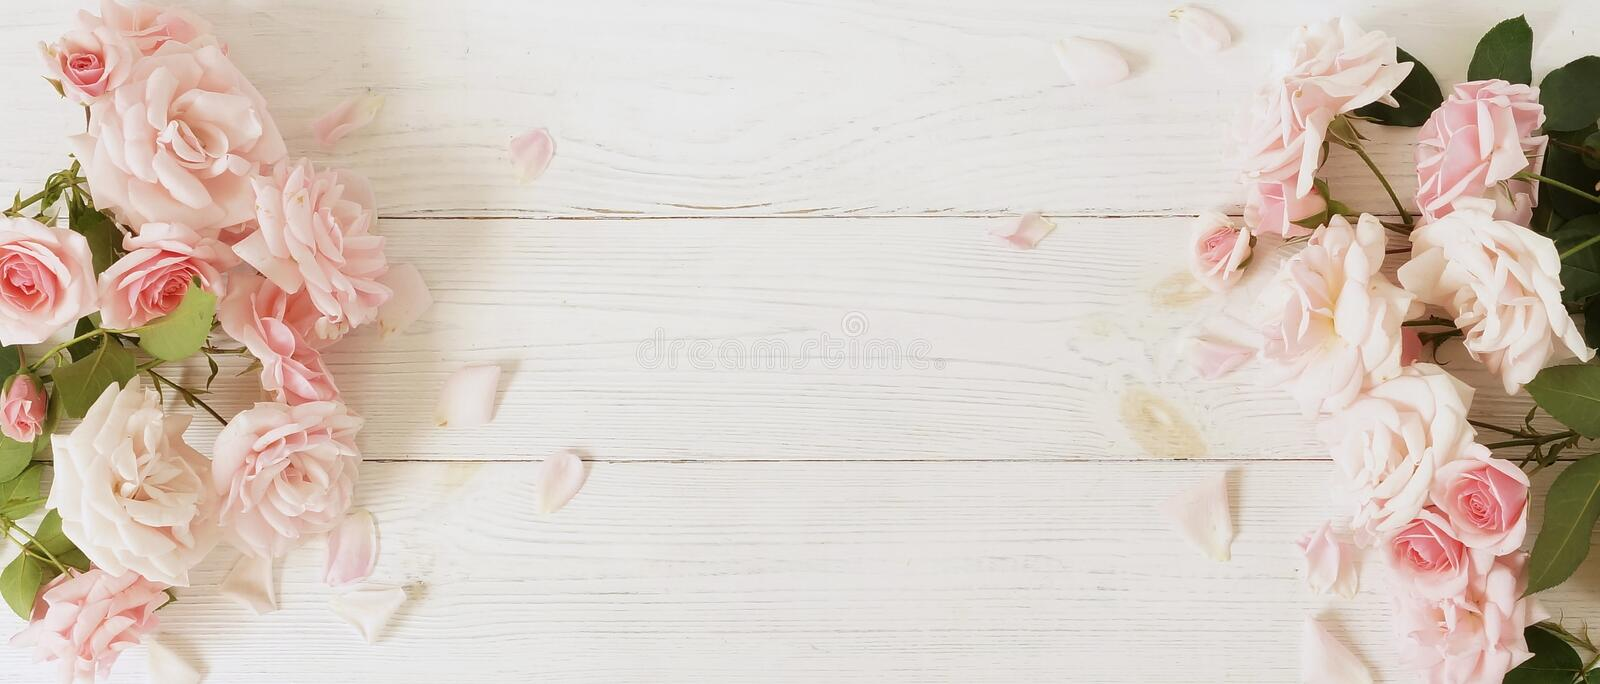 Flowers background. Bouquet of beautiful pink roses on white wooden background. royalty free stock image